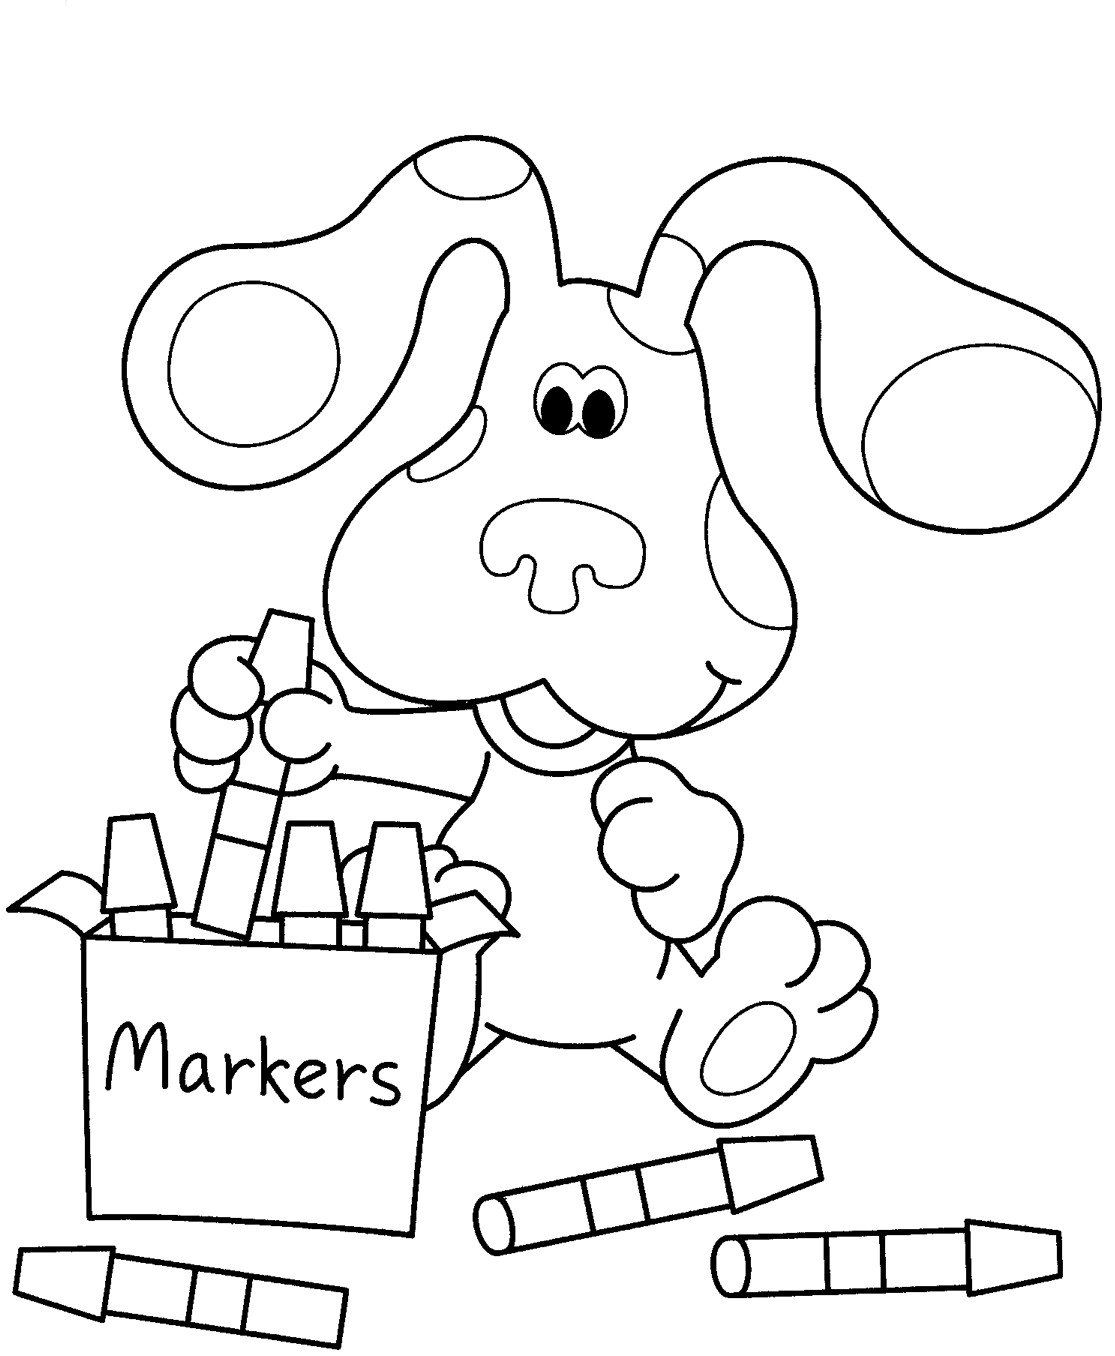 Peter Rabbit Coloring Pages Awesome Nick Jr Christmas Coloring Pages At Getdrawings Birthday Coloring Pages Nick Jr Coloring Pages Unicorn Coloring Pages